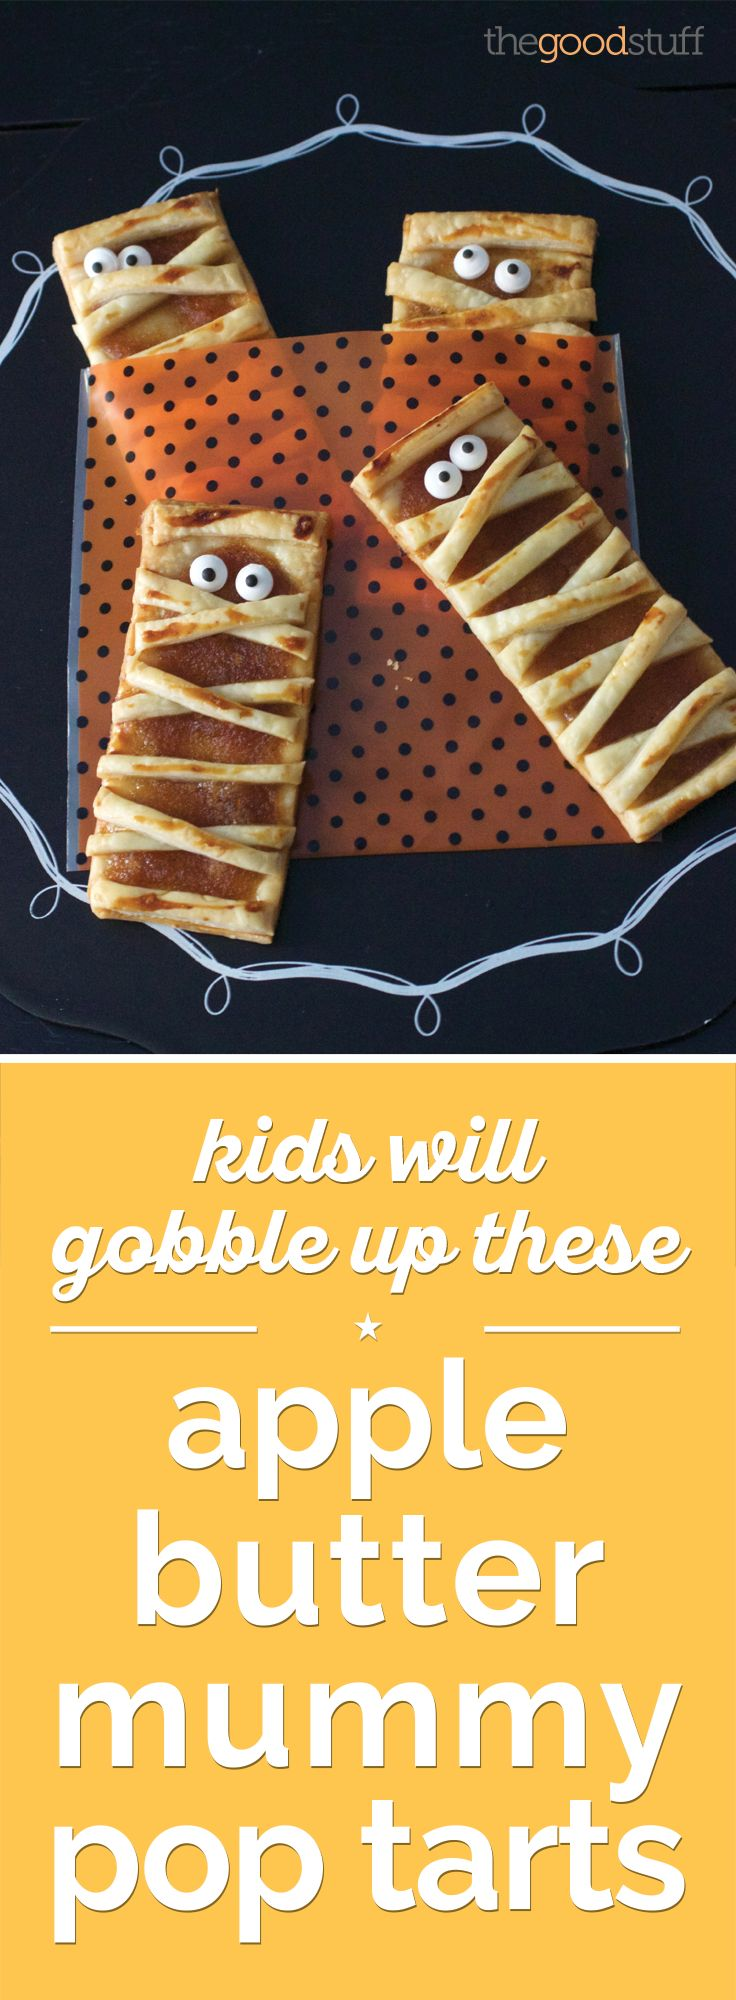 These spooky treats are so easy to make and perfect for any Halloween festivity!